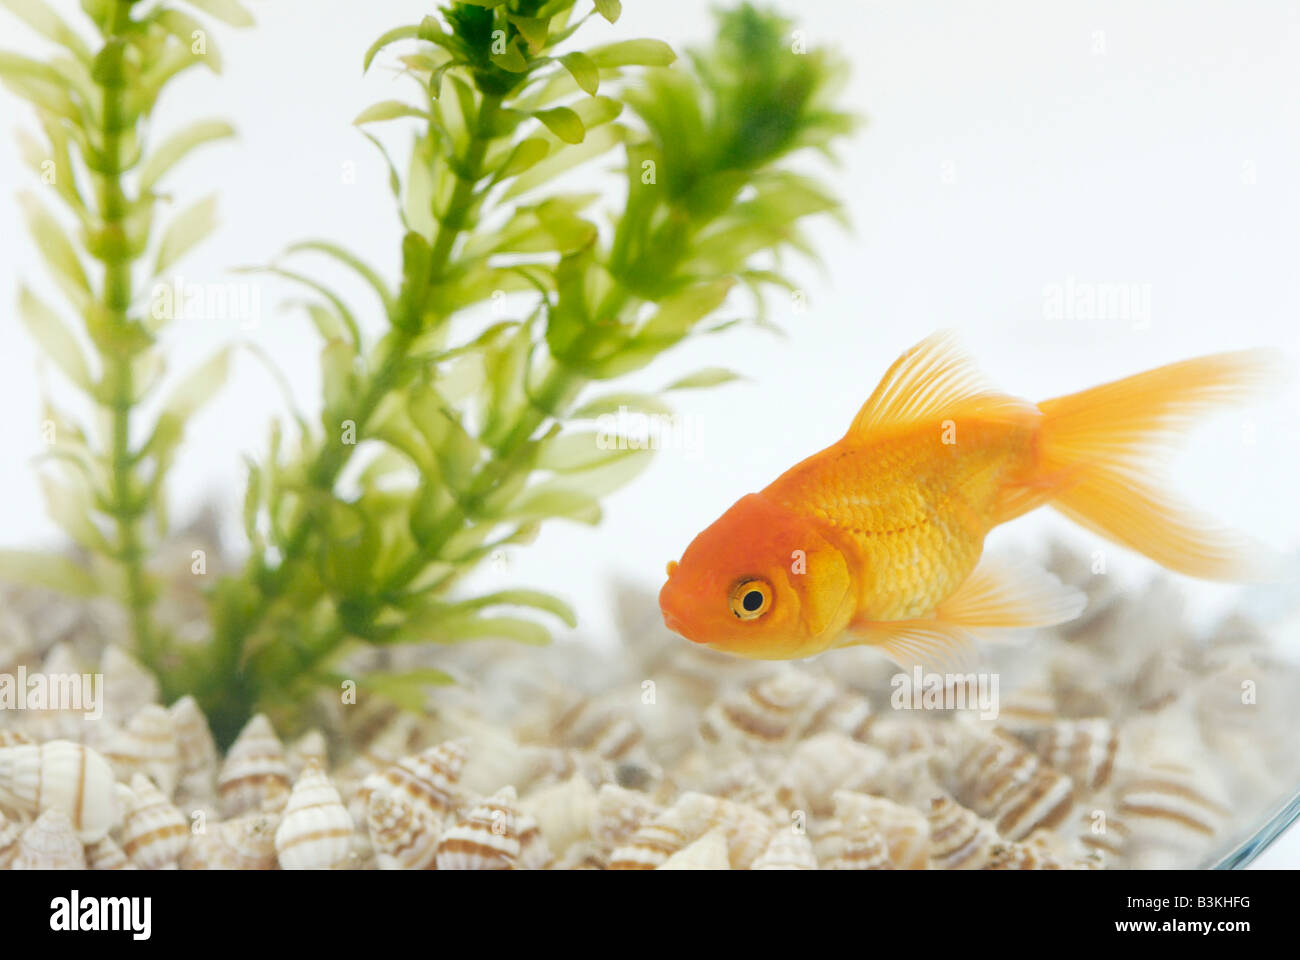 A fantailed goldfish Carassius auratus living in a bowl with an aquatic plant Elodea Stock Photo